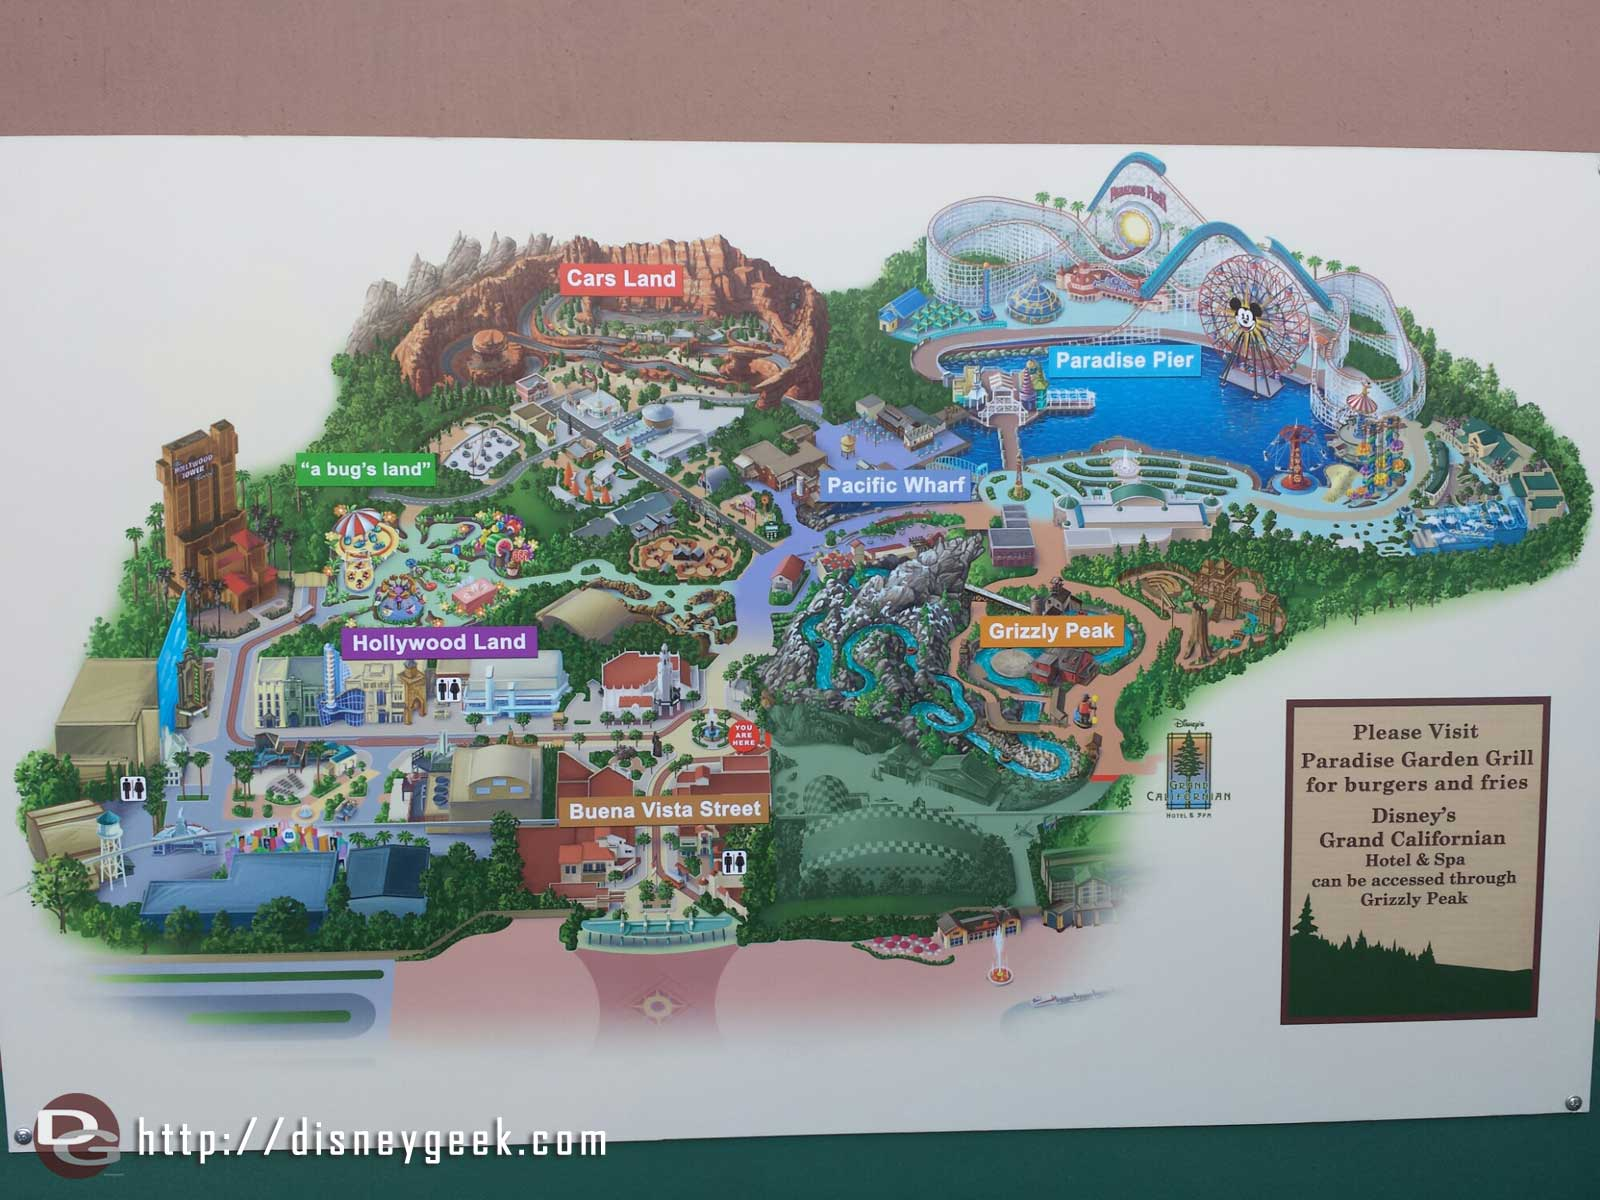 A Disney California Adventure Map Showing What Is Closed